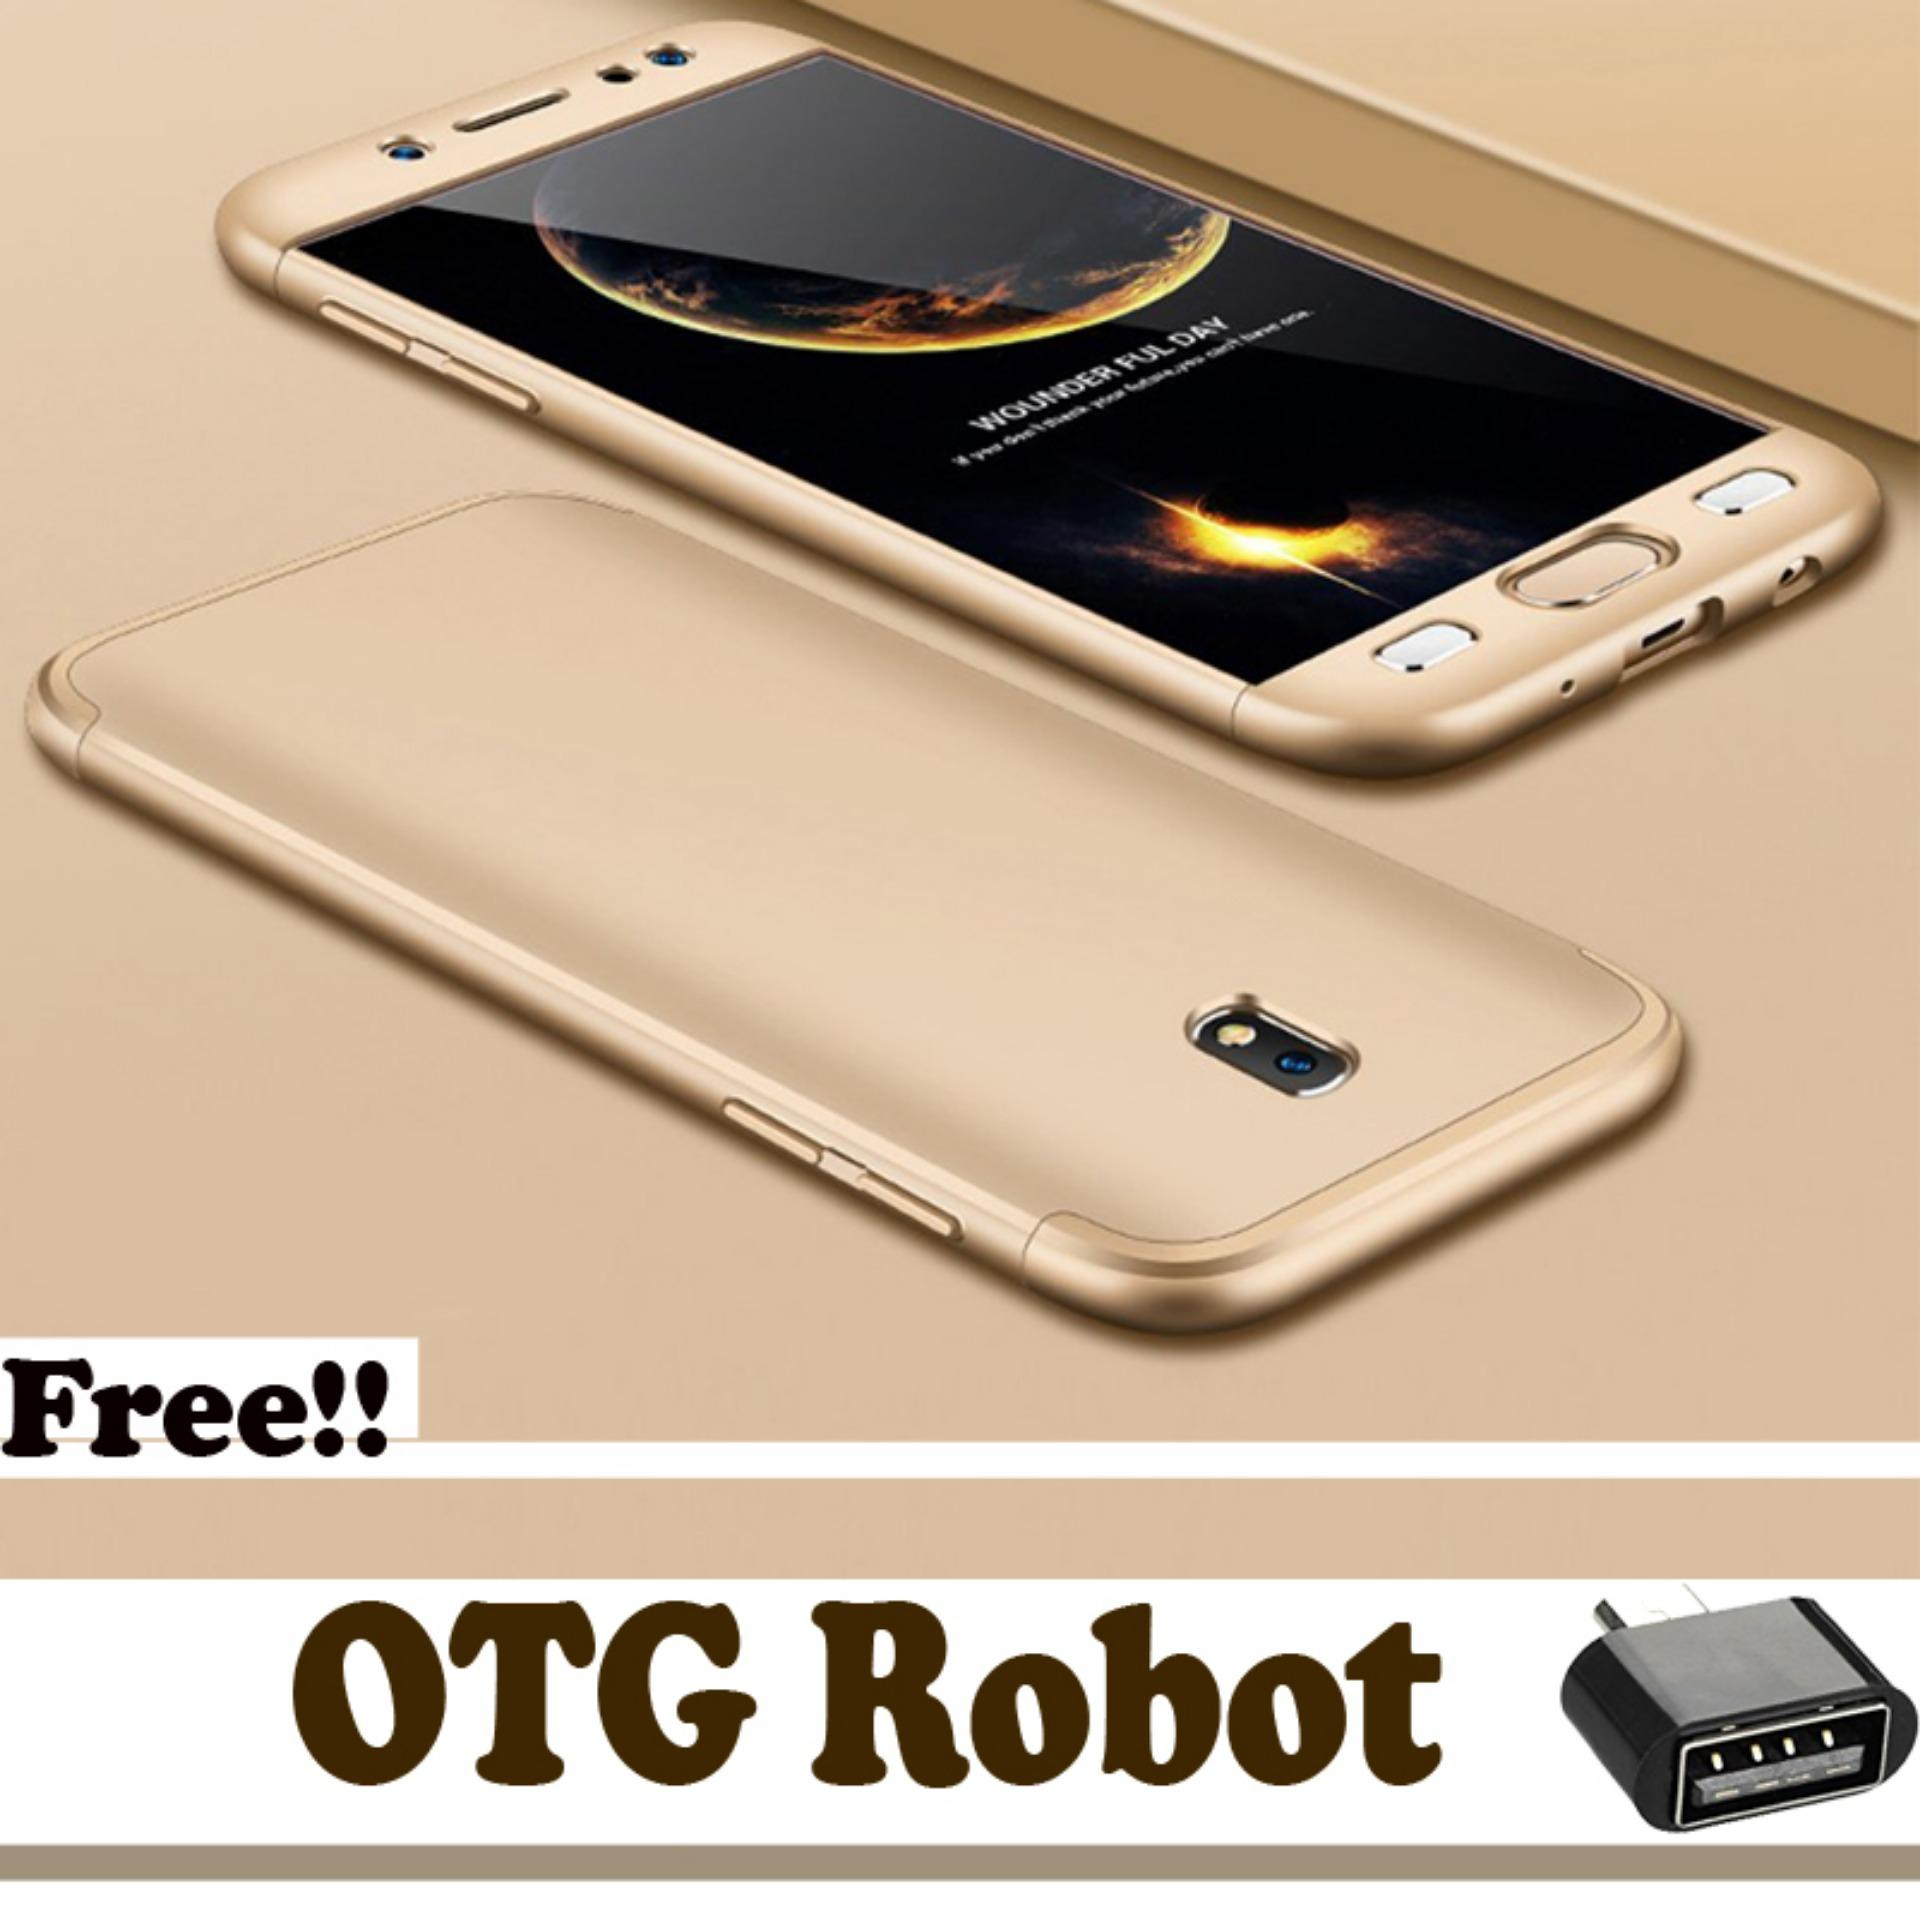 360 Full Protection Case Elite Untuk Samsung Galaxy J5 ProFull Body Protection Shockproof Baby Skin Cover - Gold - Free OTG